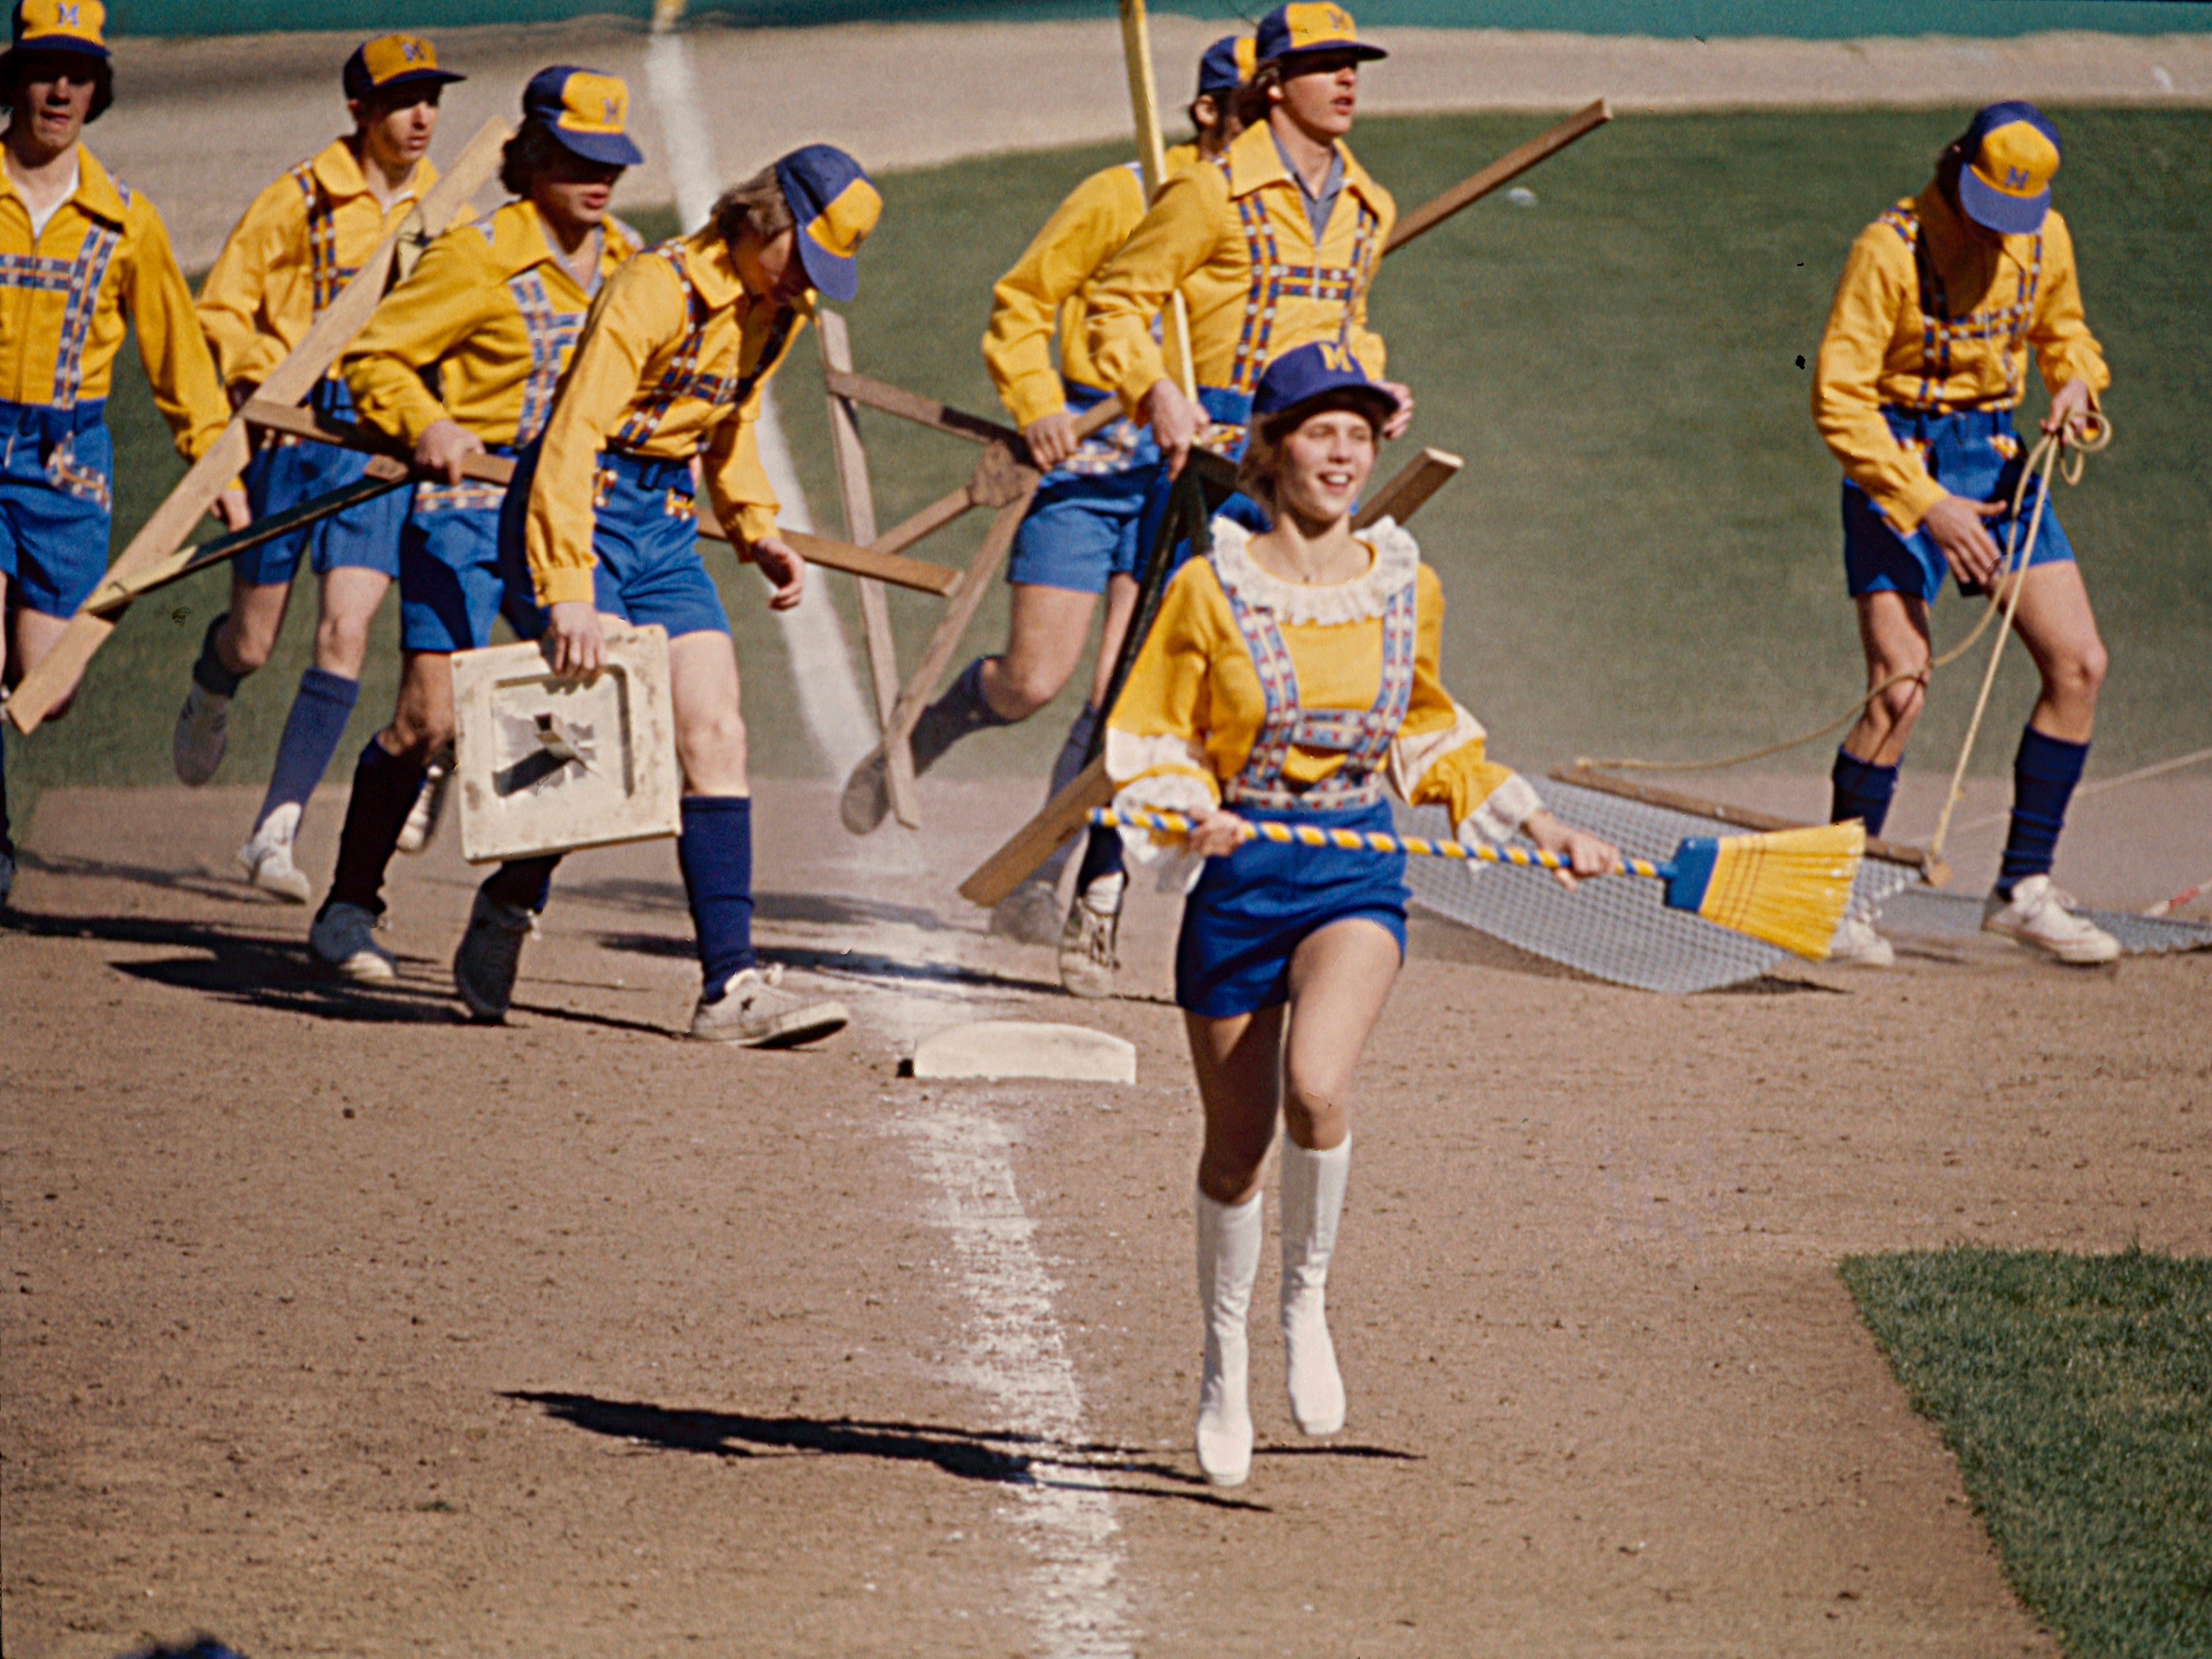 Bonnie Brewer (a.k.a. Janine Feltz) leads the grounds crew during their mid-game infield cleanup detail on opening day at County Stadium on April 8, 1976. This photo was published in the April 9, 1976, Milwaukee Journal. In the home opener, the Milwaukee Brewers beat the New York Yankees, 5-0.